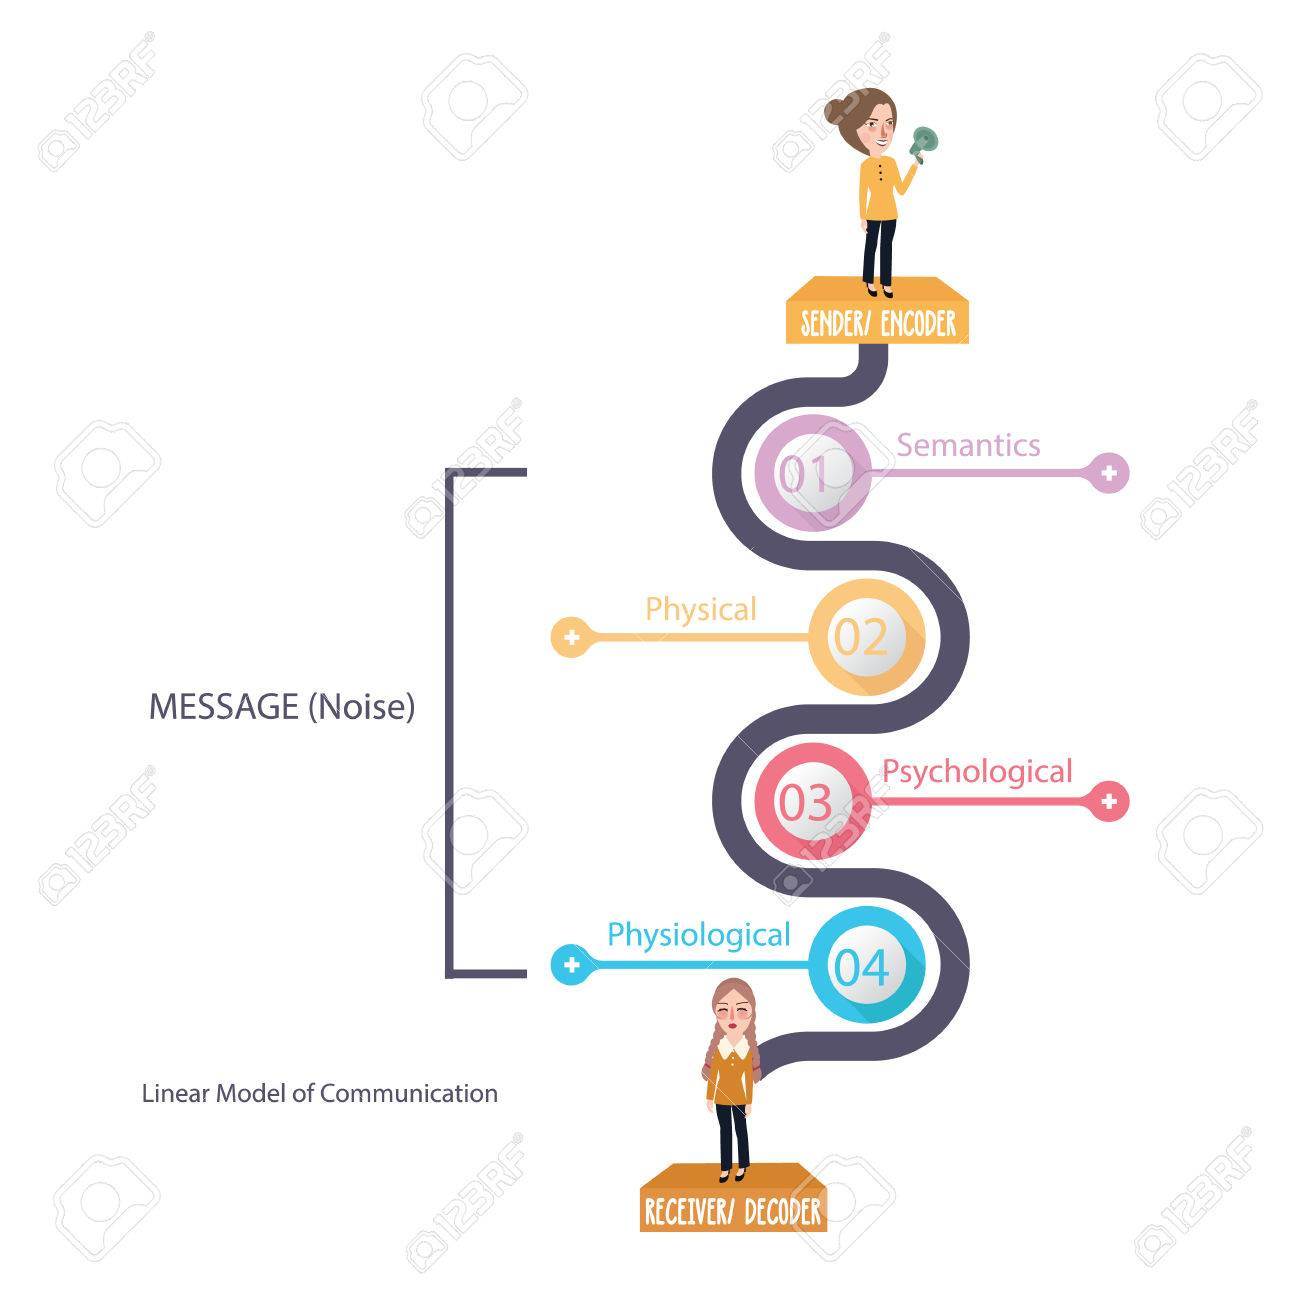 Linear model of communication diagram theory message and noise linear model of communication diagram theory message and noise vector stock vector 82516074 ccuart Gallery